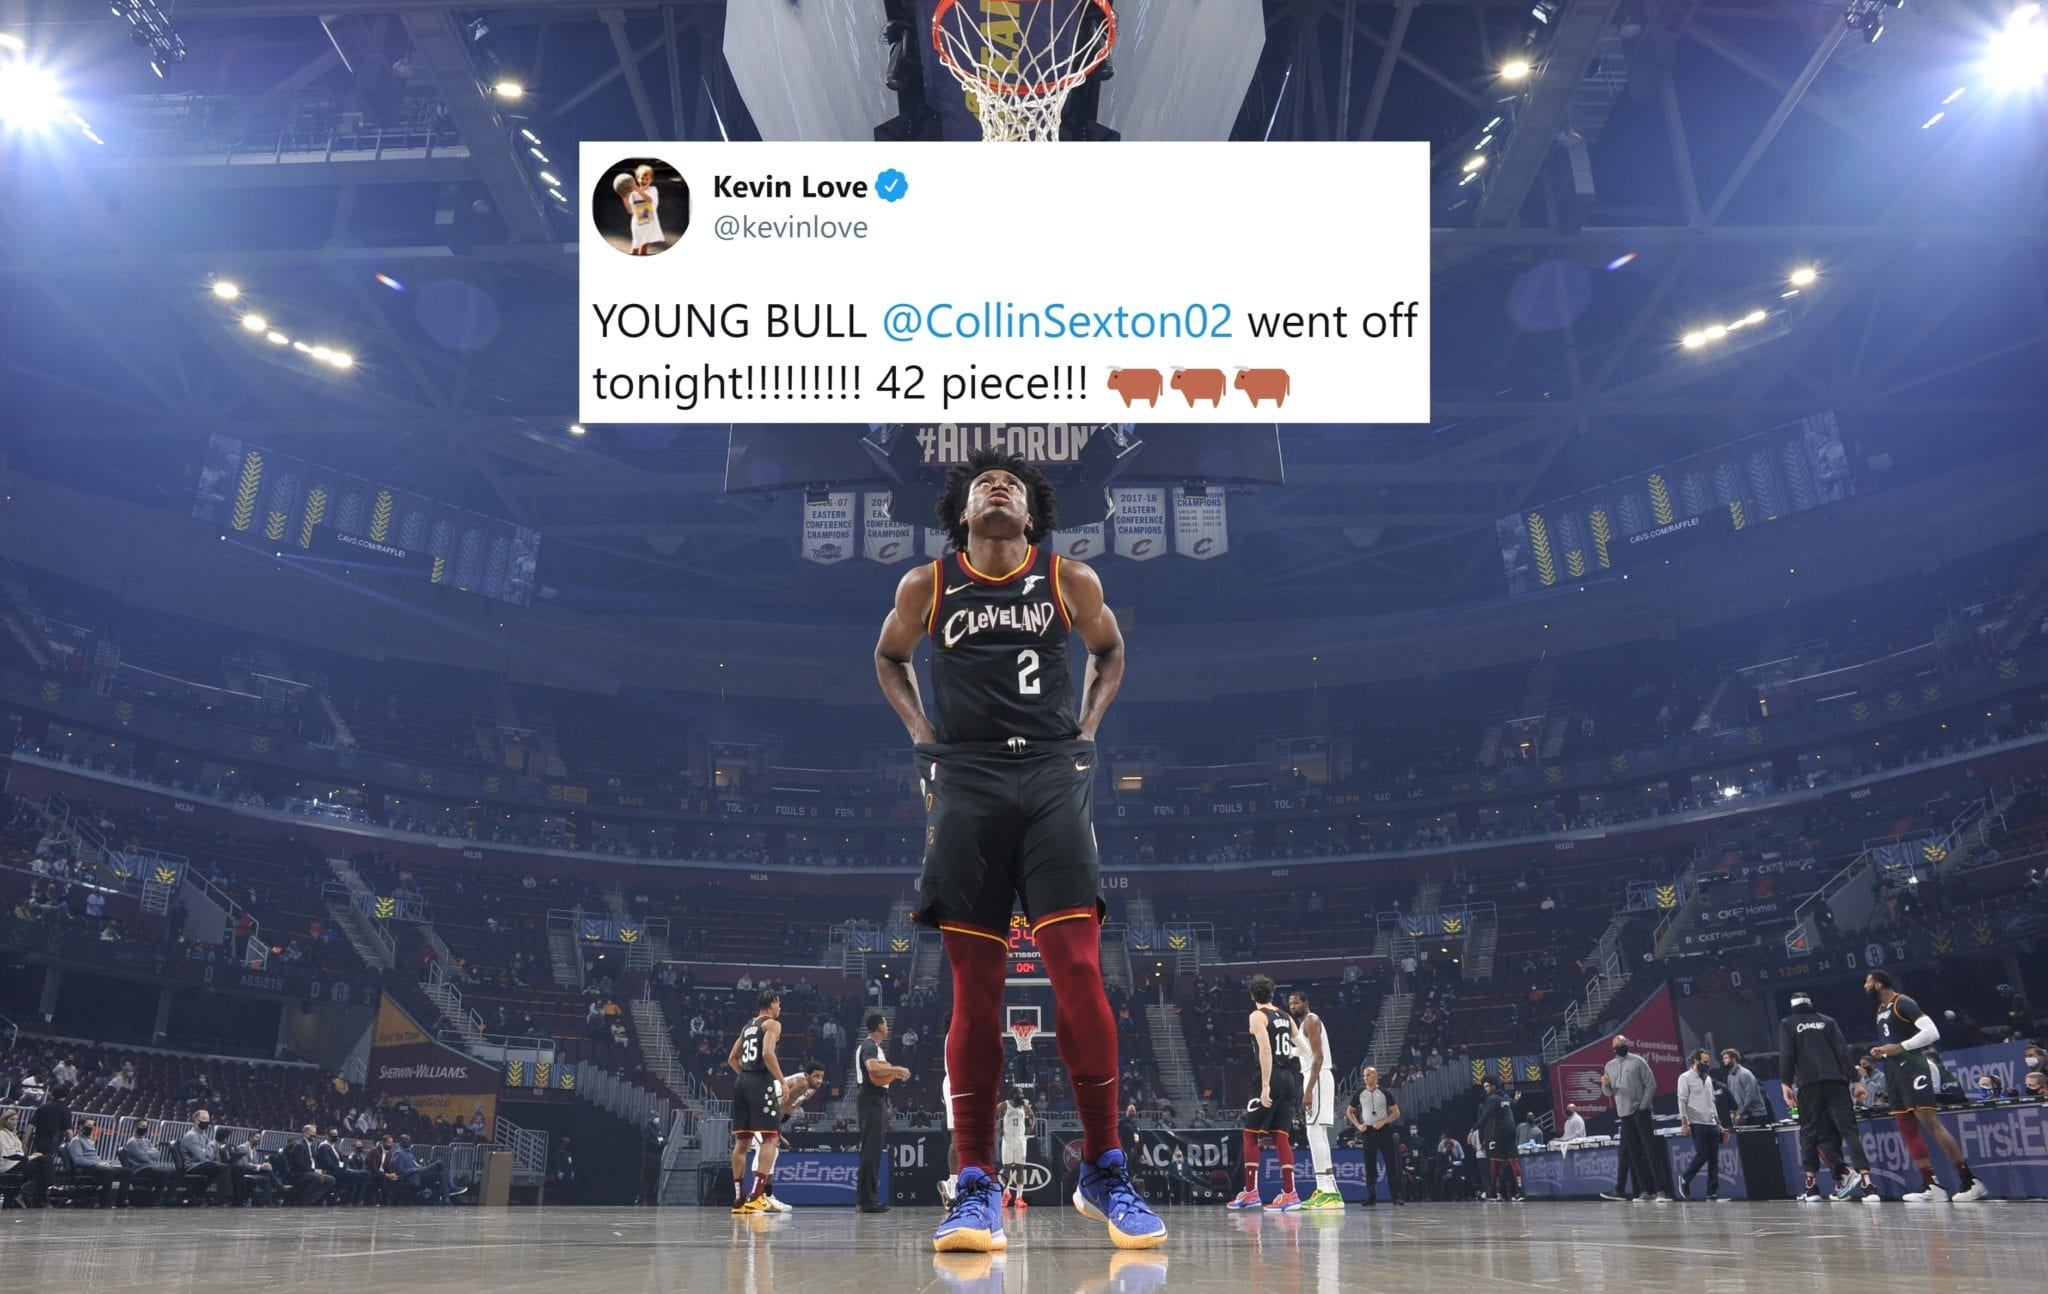 NBA Players React to Nets Big 3 Getting Torched by Collin Sexton